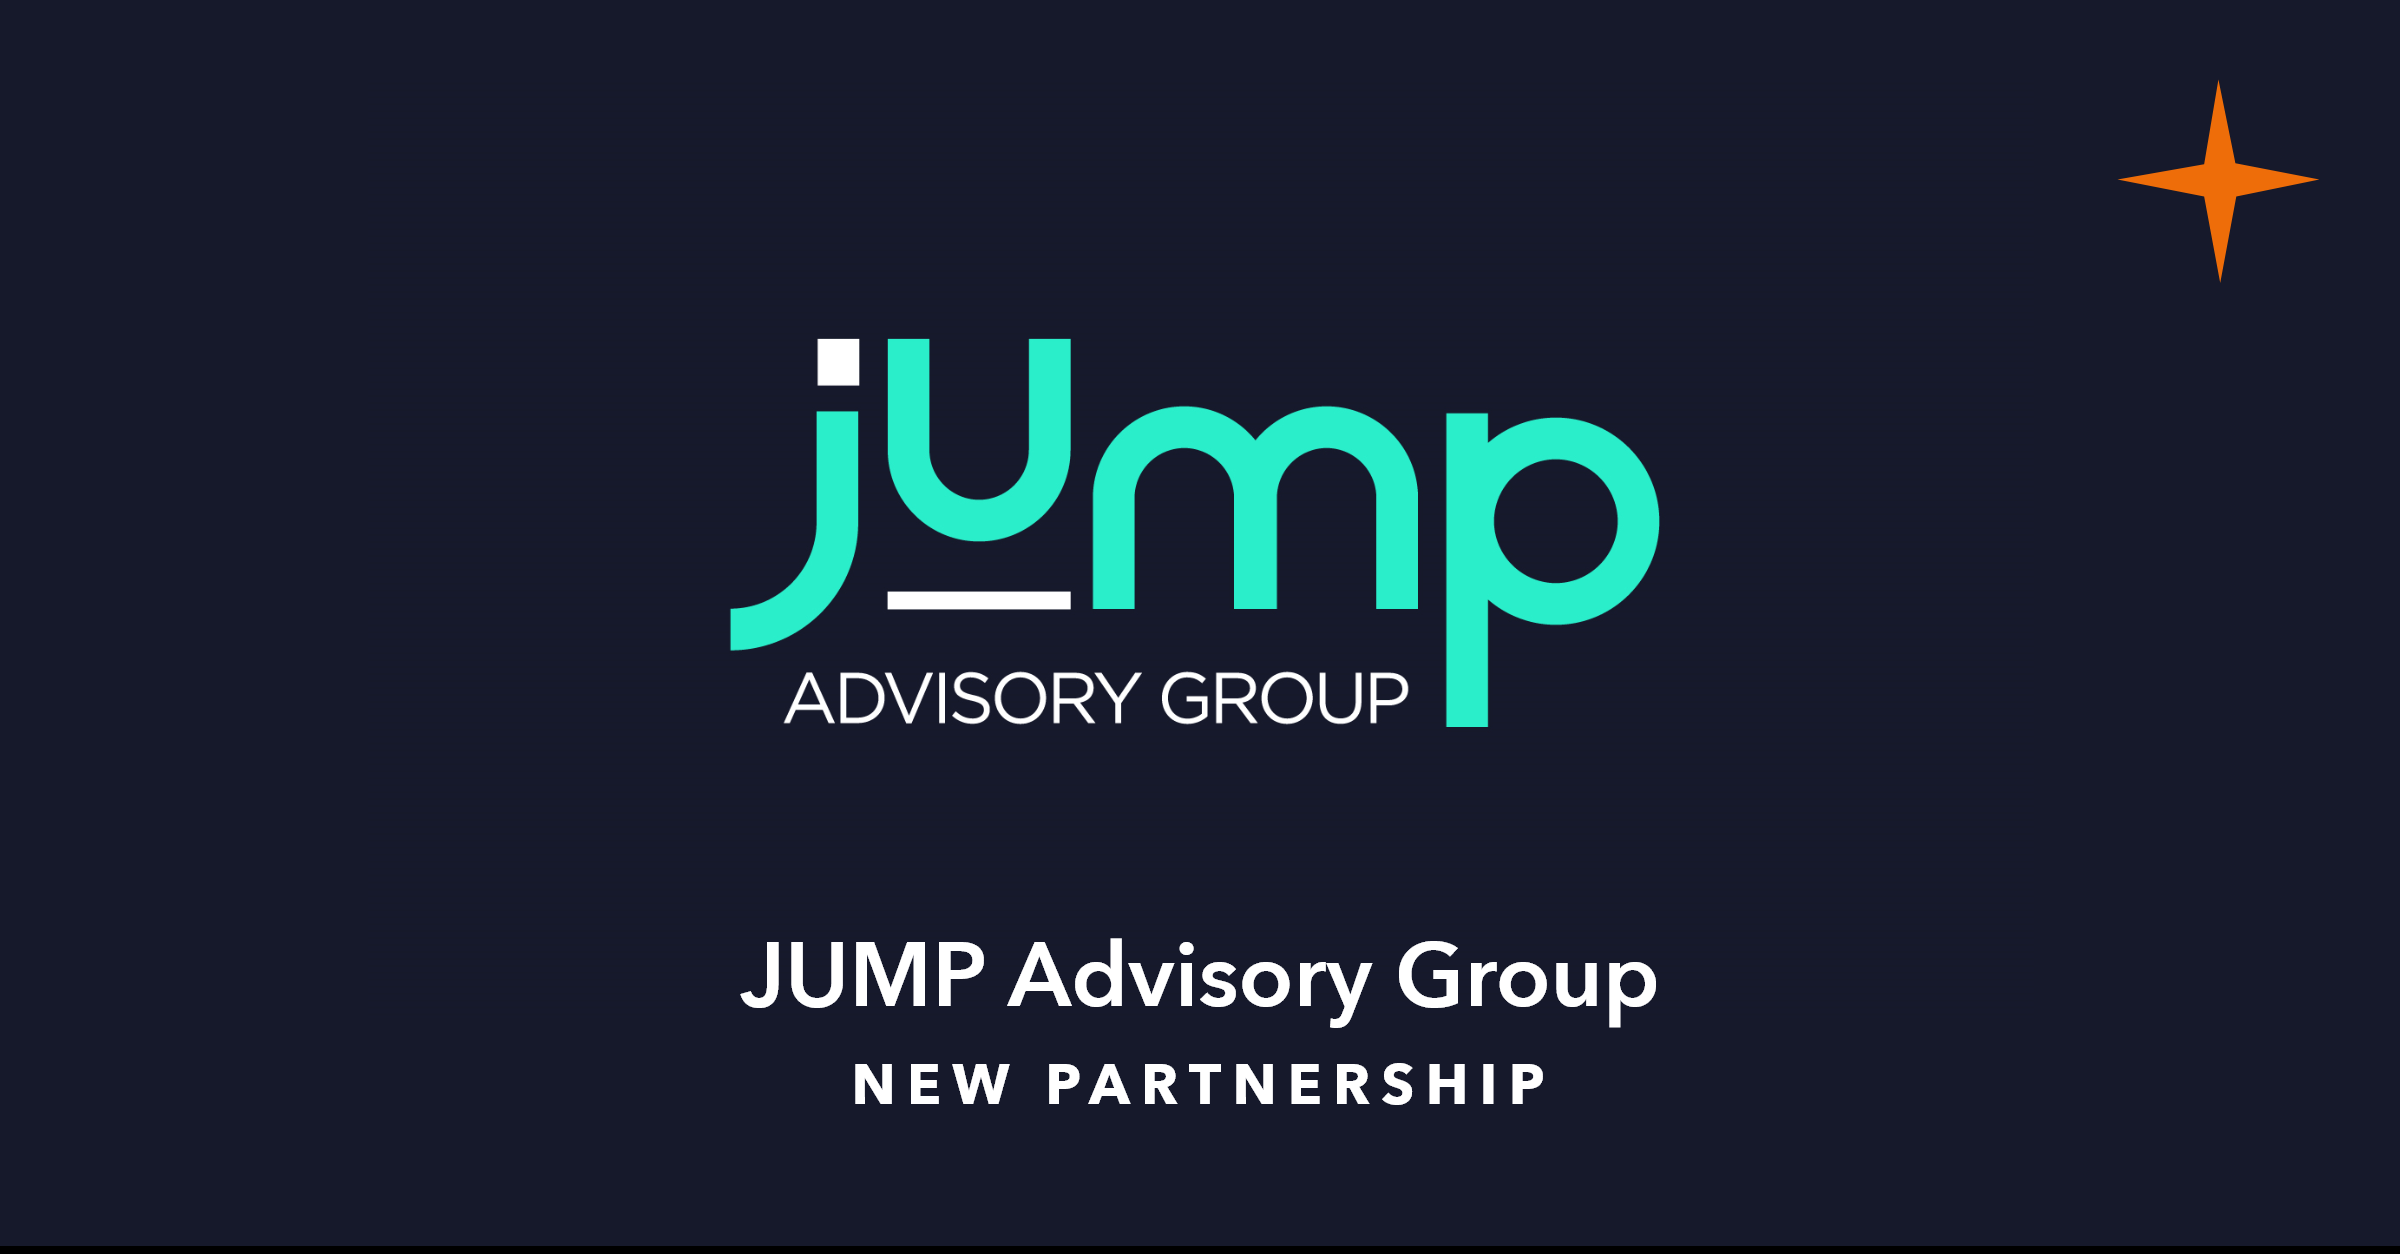 QuoStar announces new partnership with JUMP Advisory Group